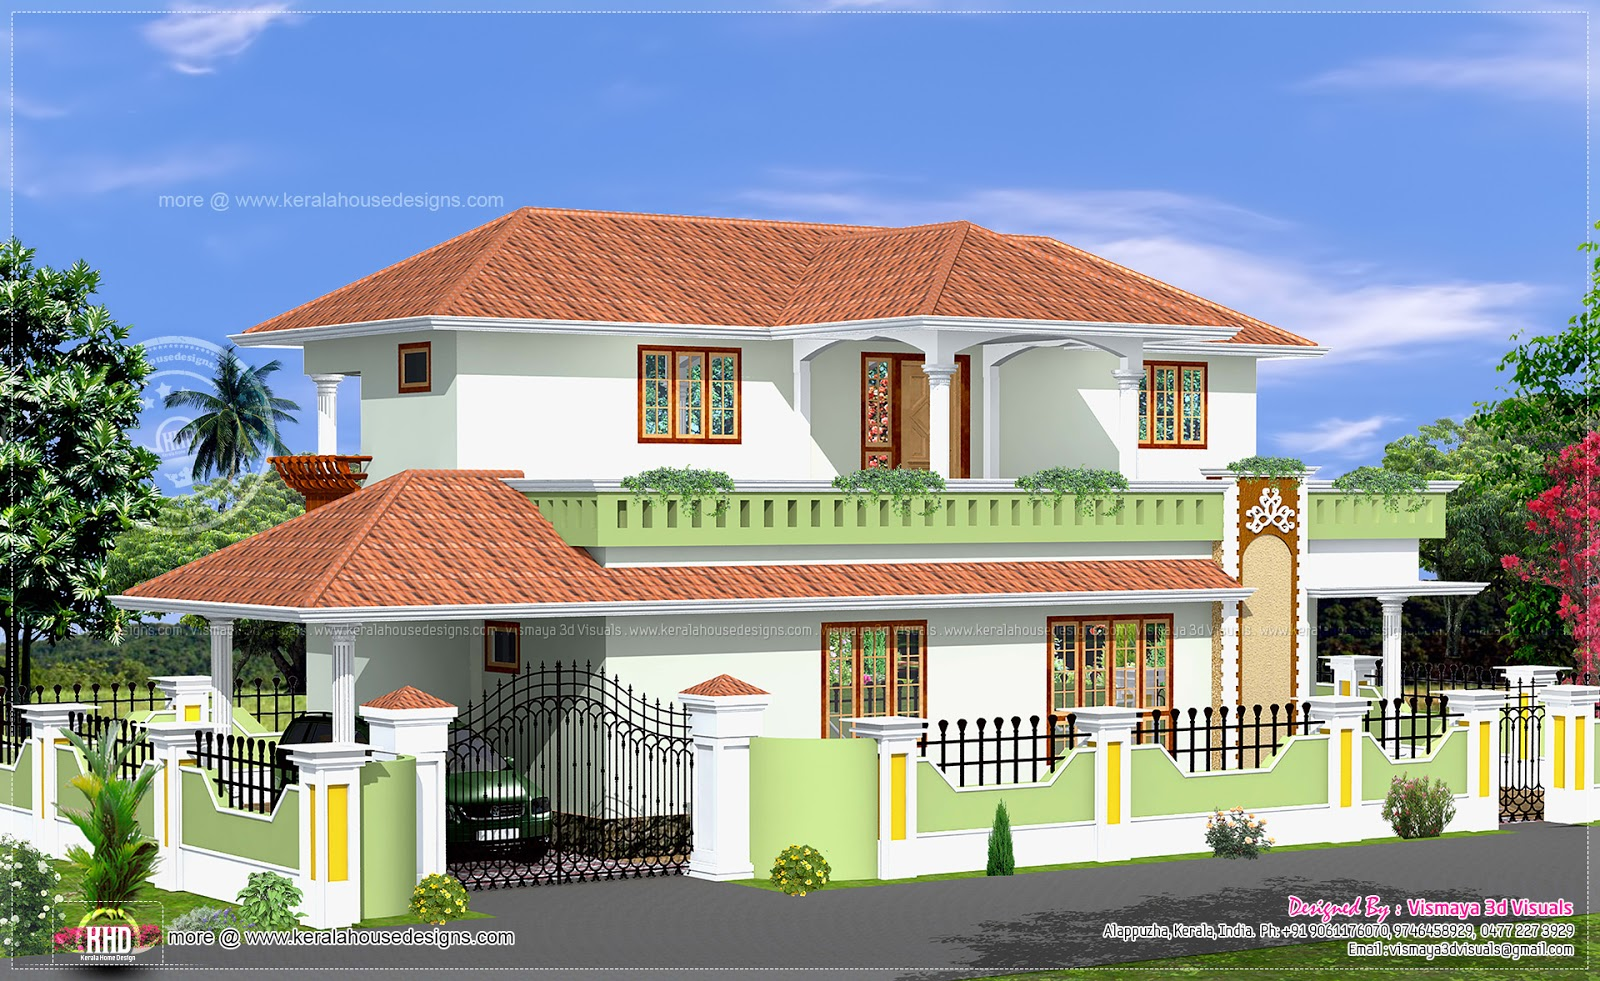 Simple house designs kerala style home design and style for Simple house designs